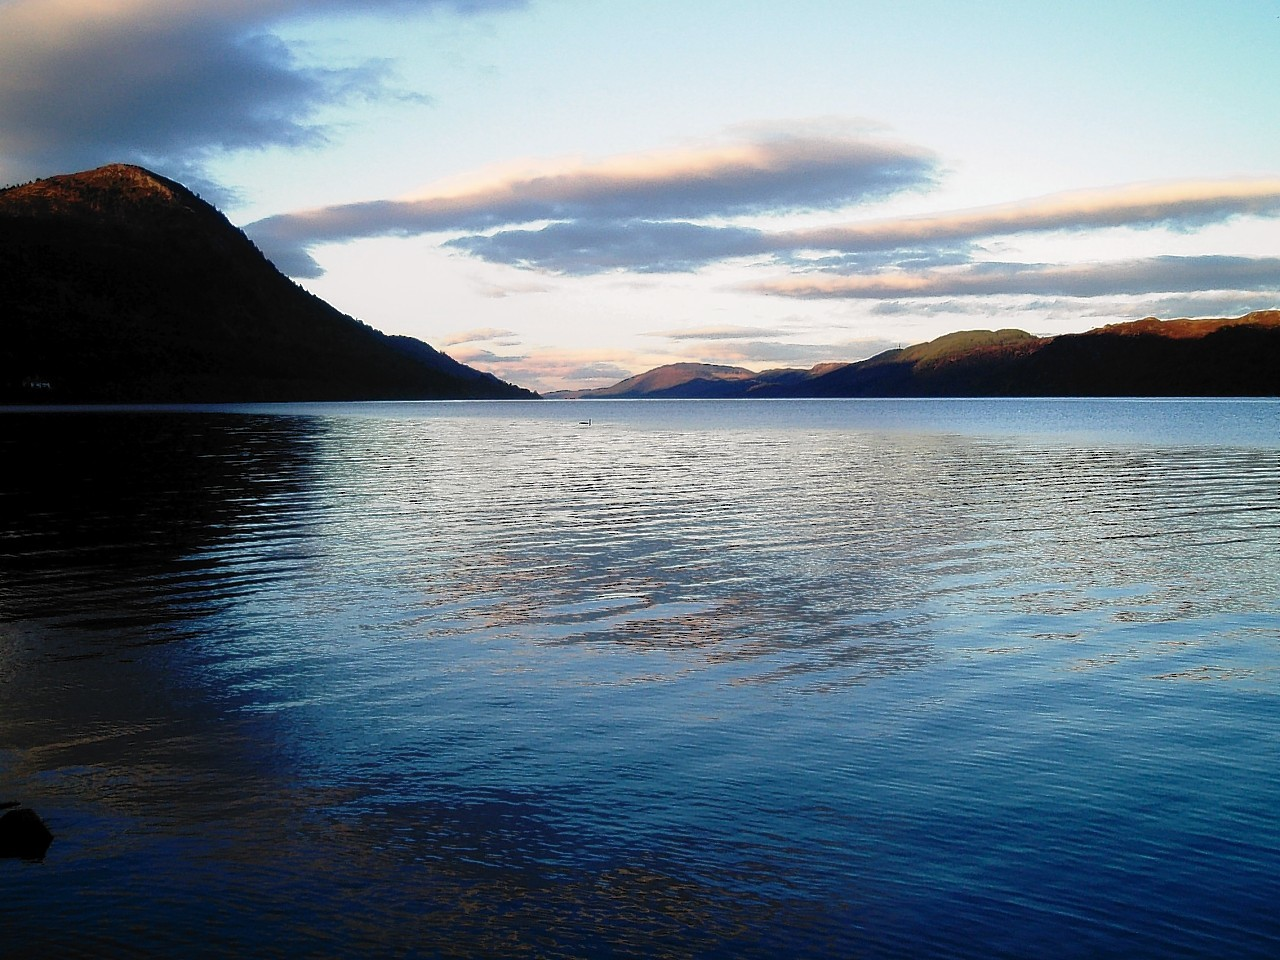 Not everything is tranquil around Loch Ness.